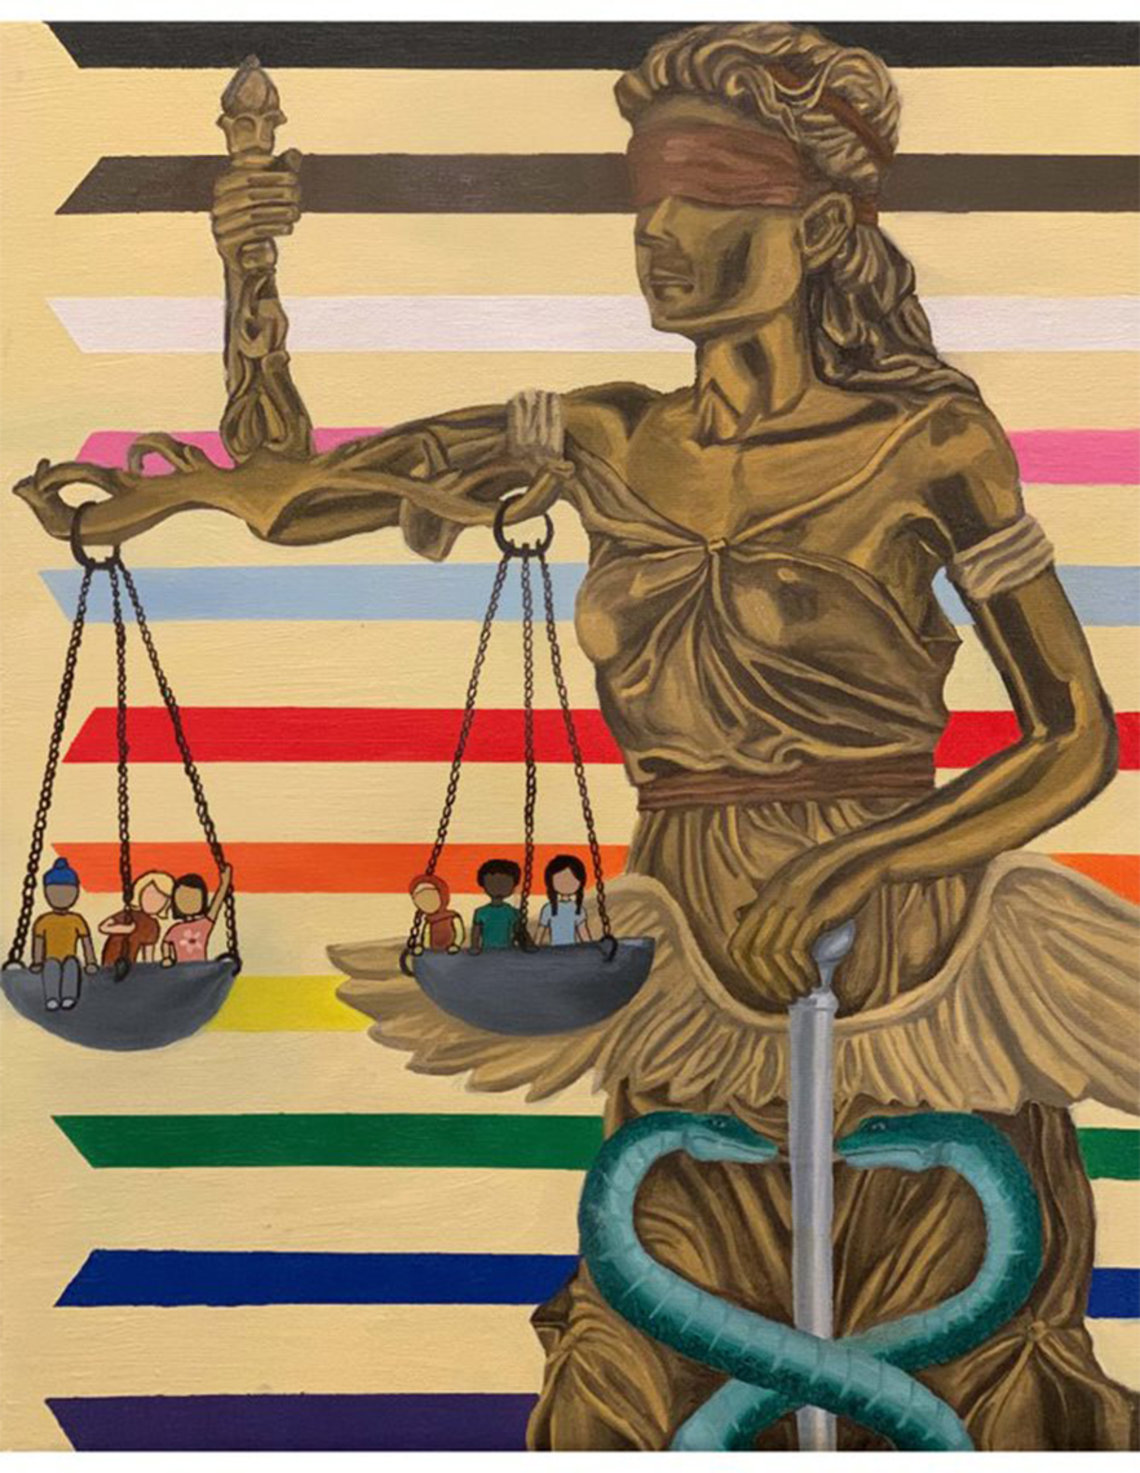 A golden statue of Lady Justice holds up the staff-wrapped-with-snakes symbol of medicine and two equal scales, each filled with kids of different races, in front of the stripes of the Pride Flag.